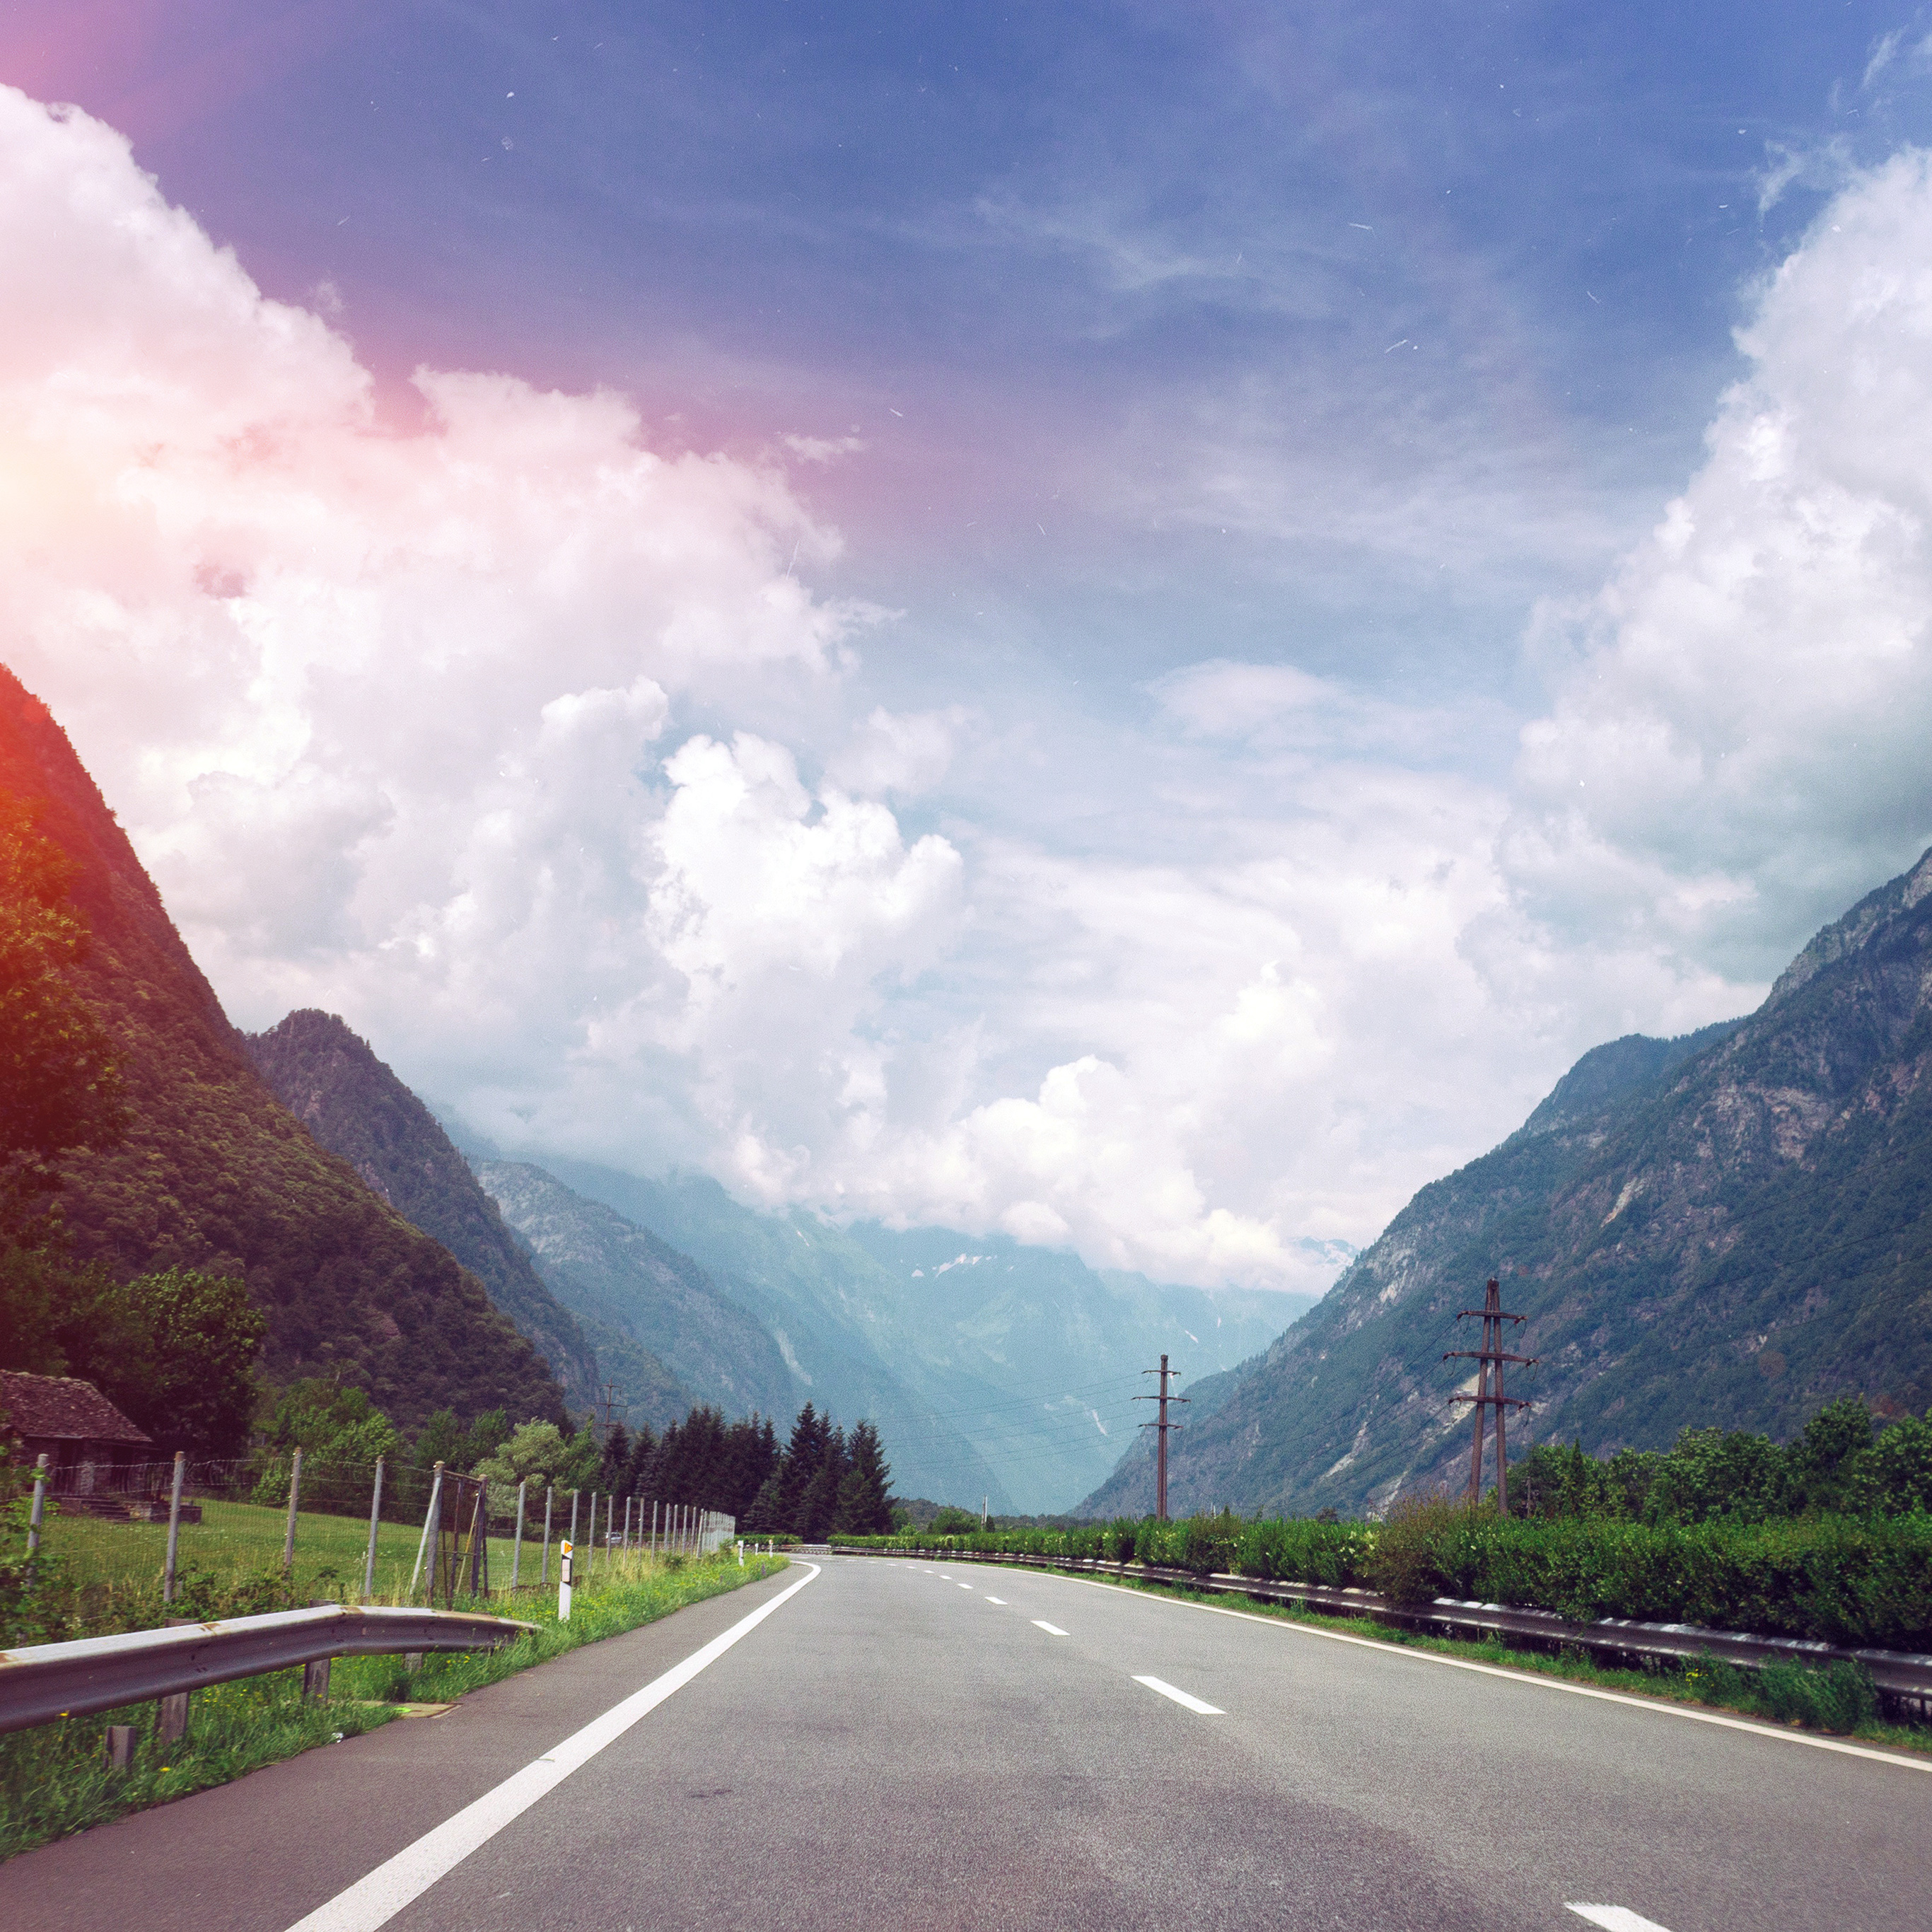 Ms57 Clouds Mountain Road Sunny Nature Flare Blue Wallpaper